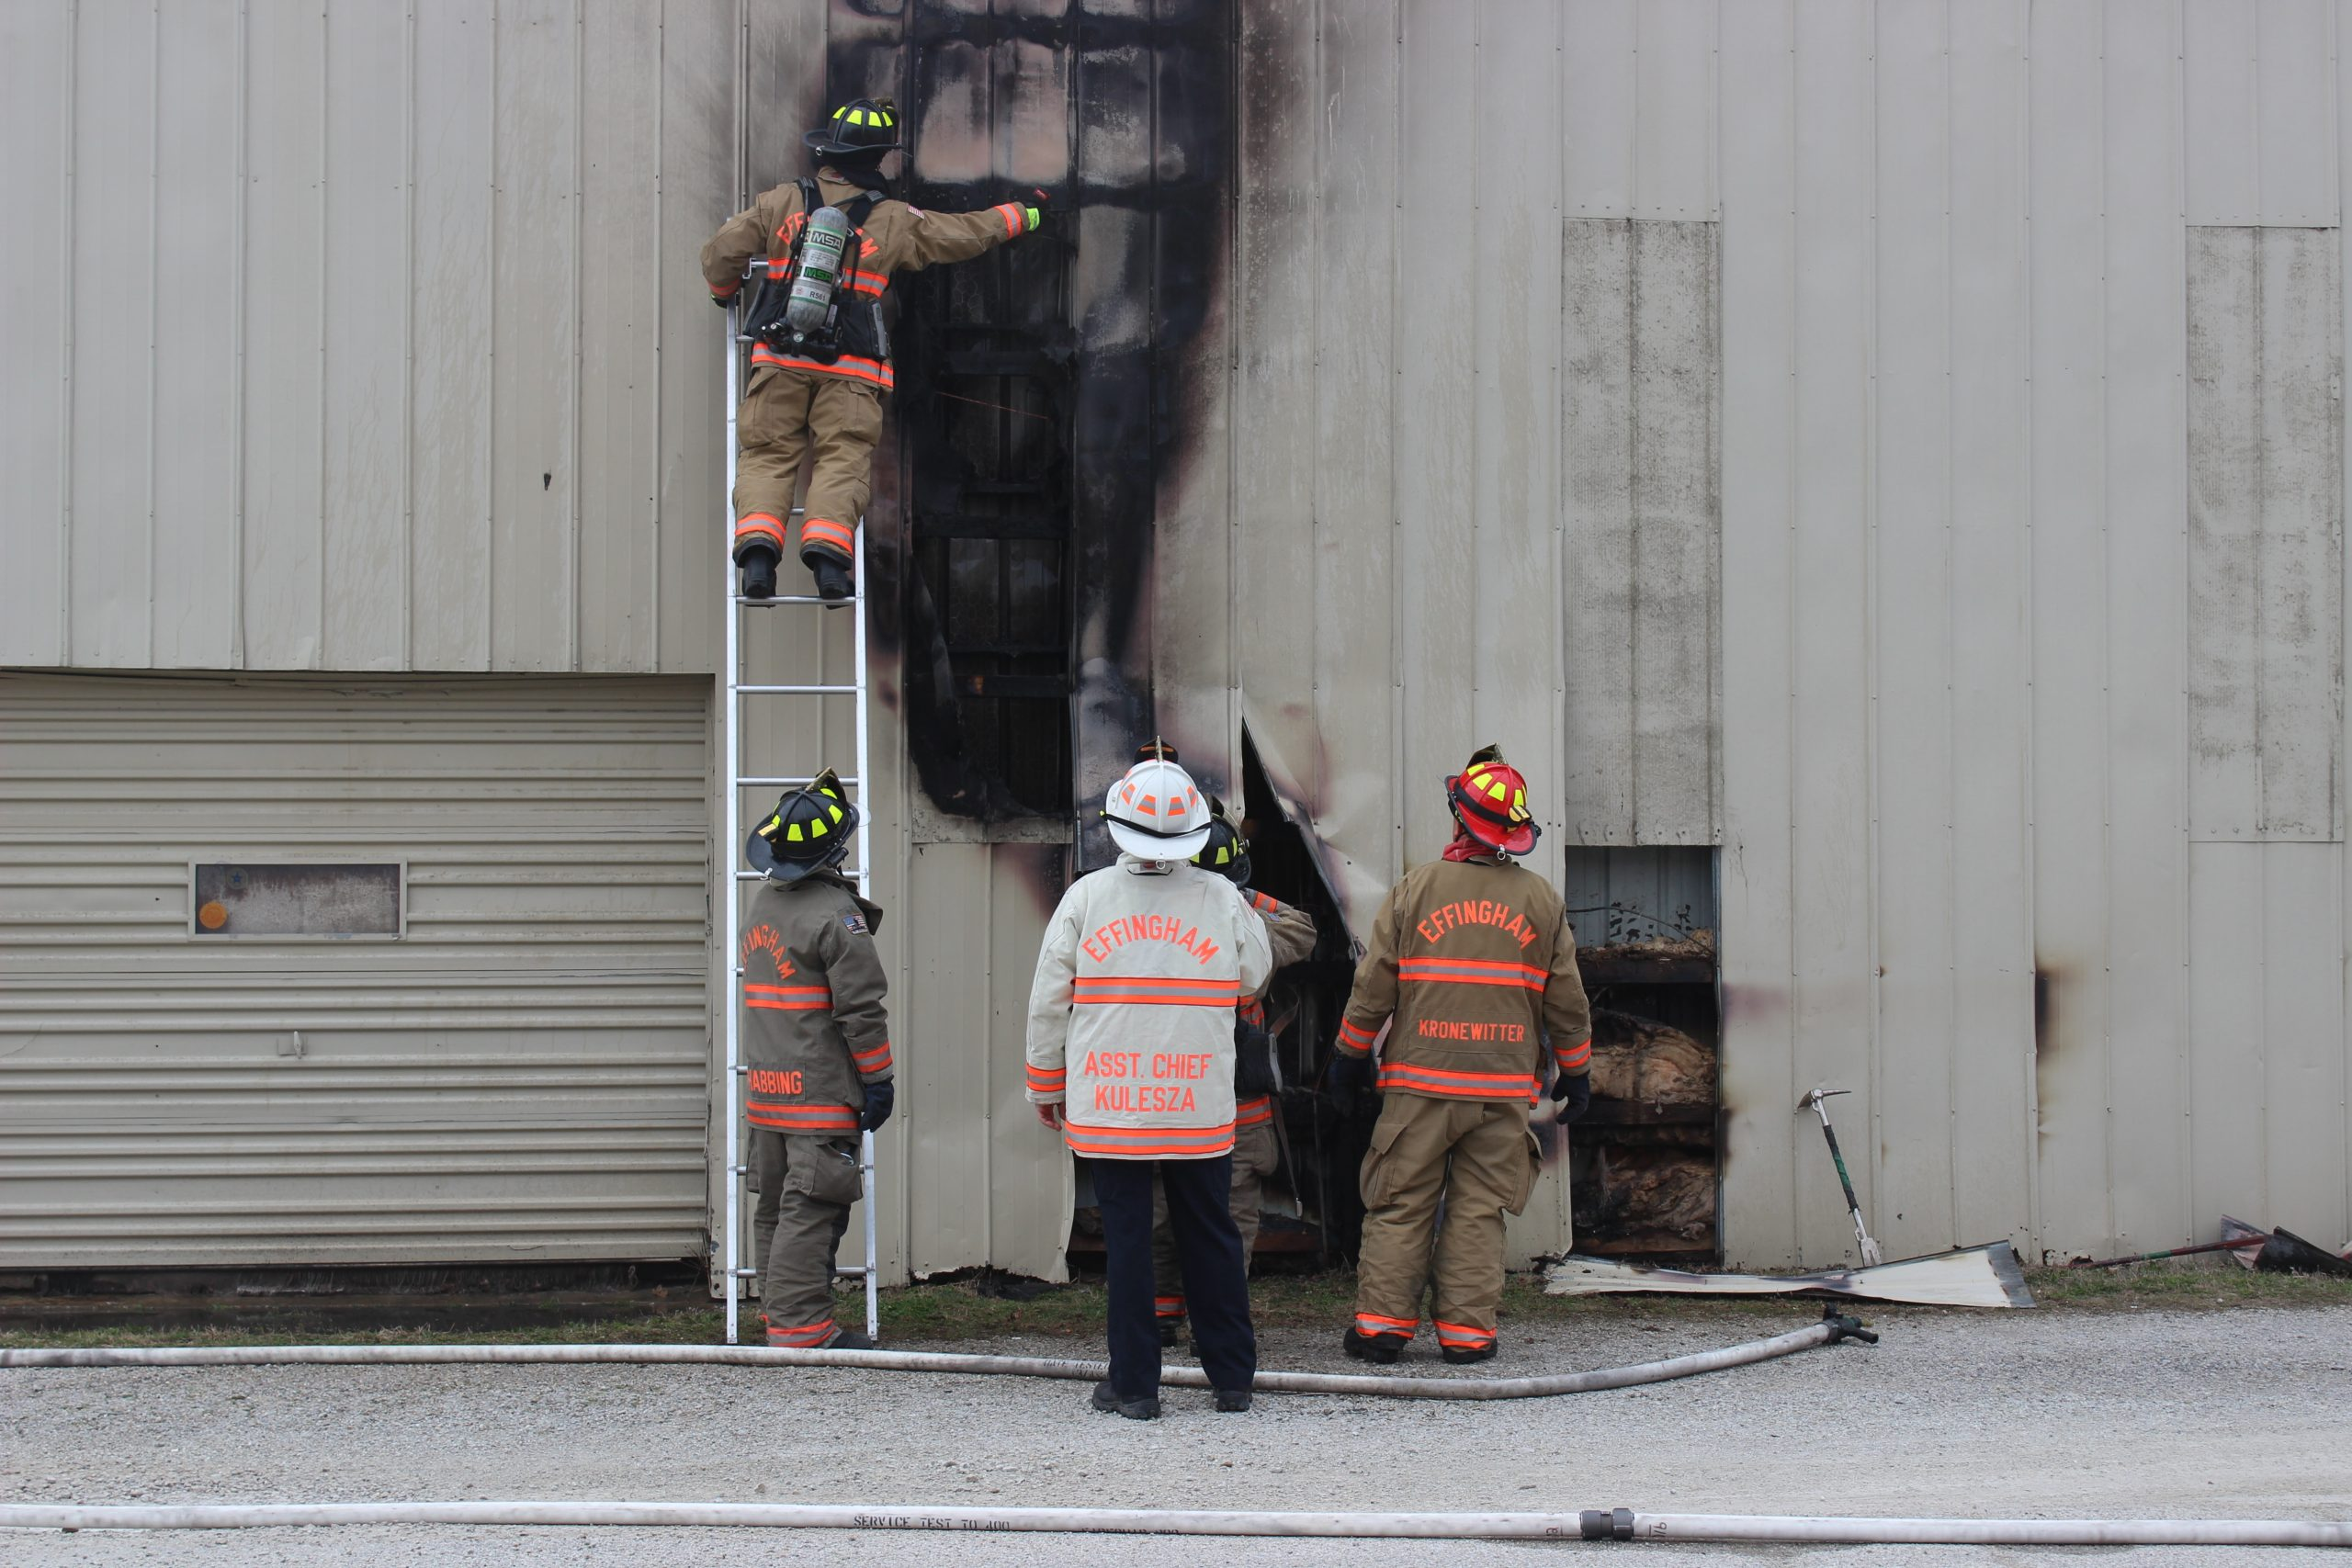 Effingham Fire Department Responds to Structure Fire at Trigg's Flooring